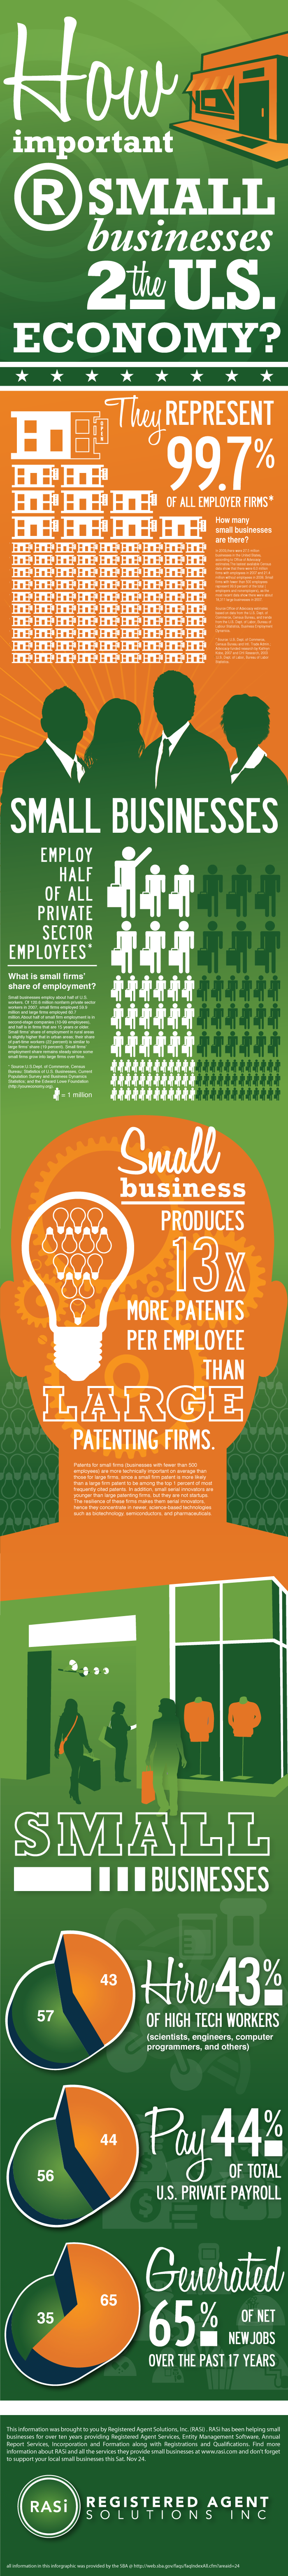 how-important-are-small-businesses-to-the-us-economy_50acfbd41b180